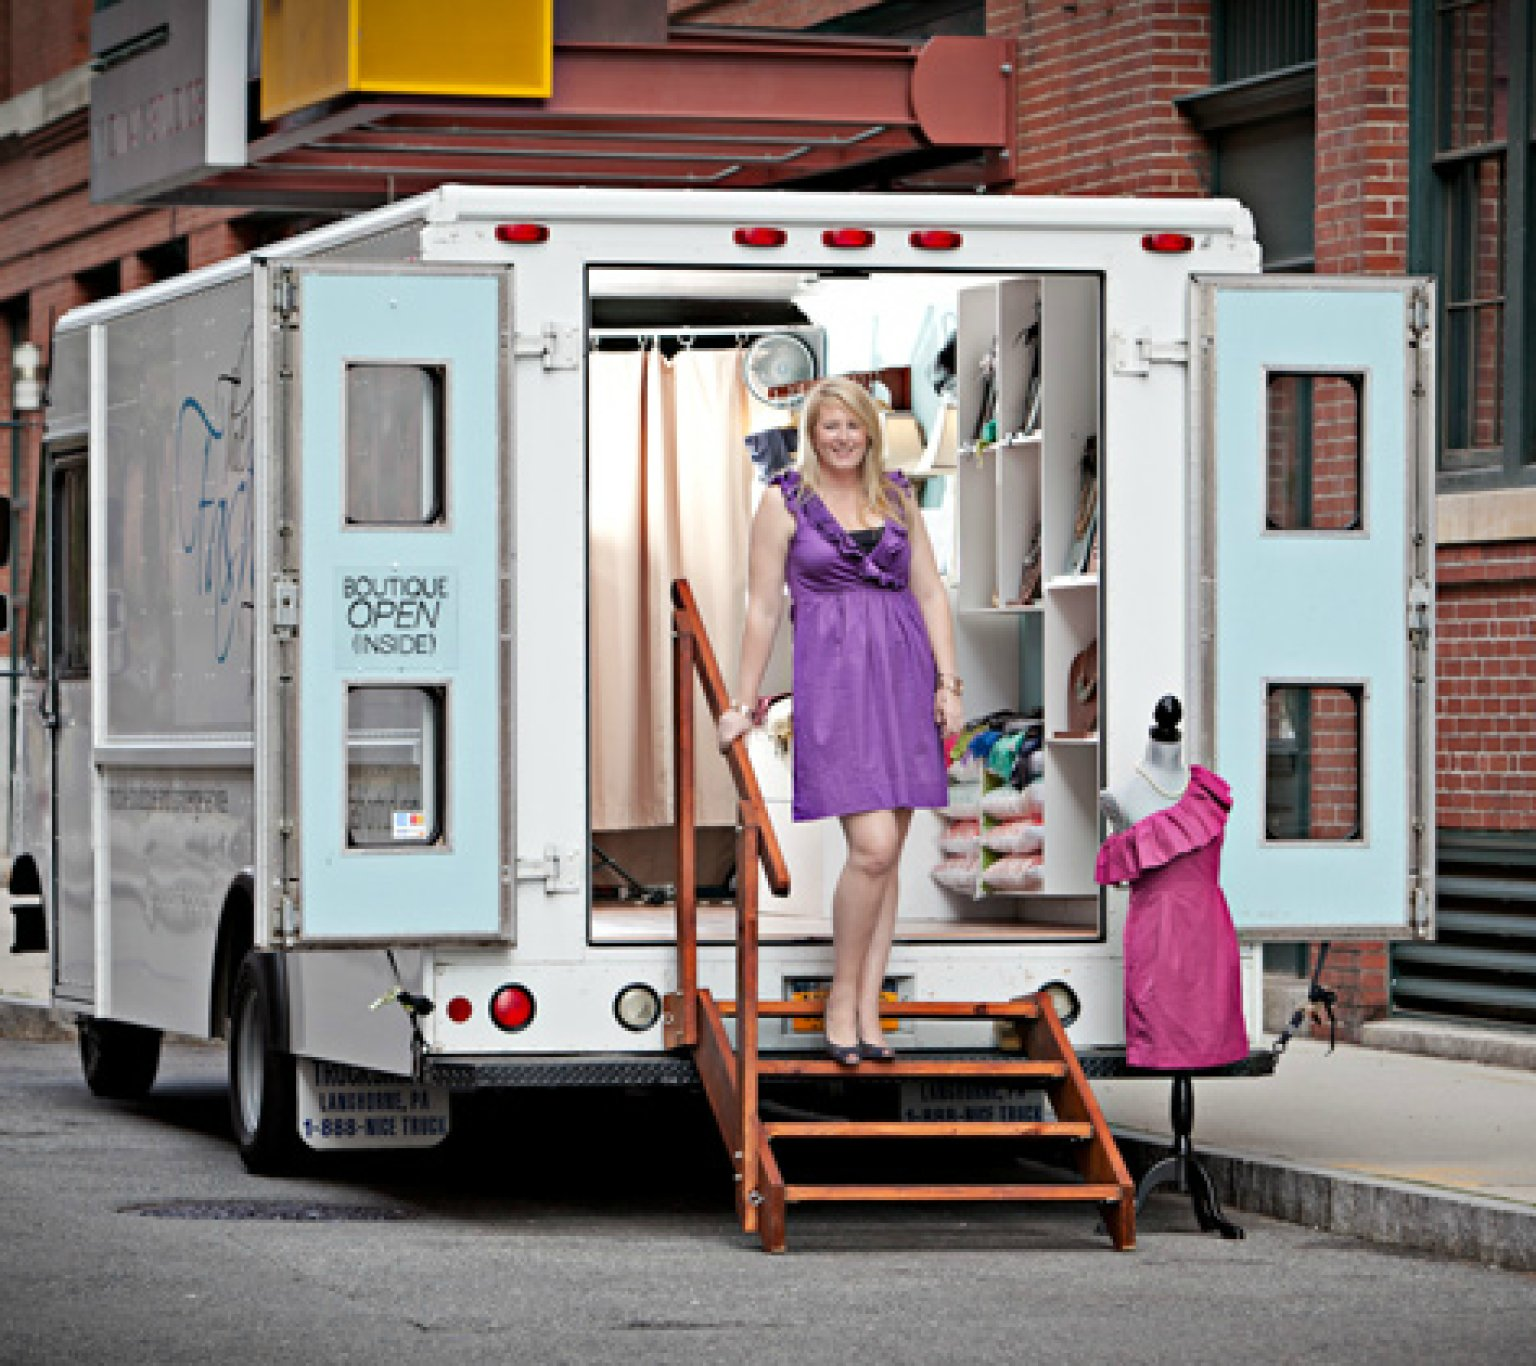 Mobile retail truck business plan